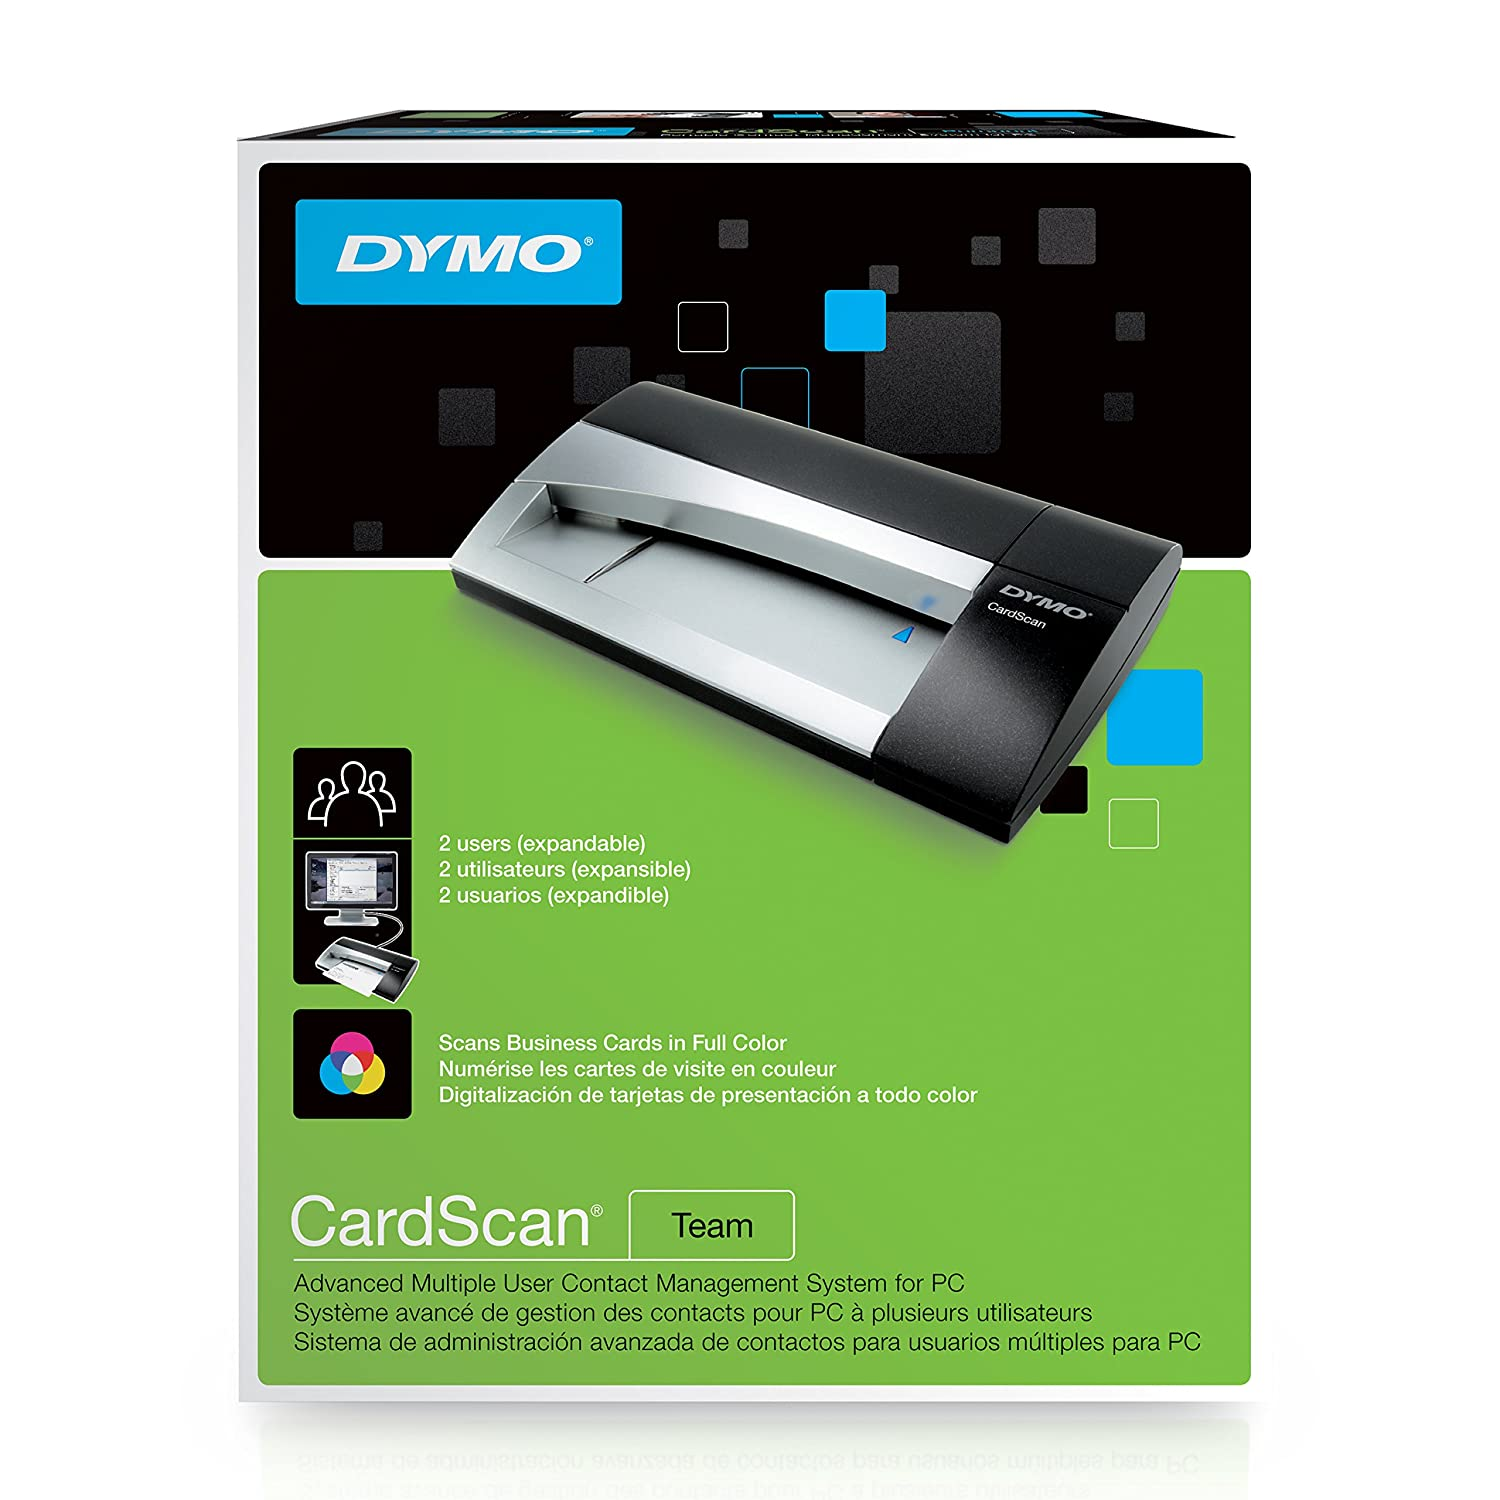 Amazon.com: DYMO CardScan v9 Team Multiple User Contact Management ...